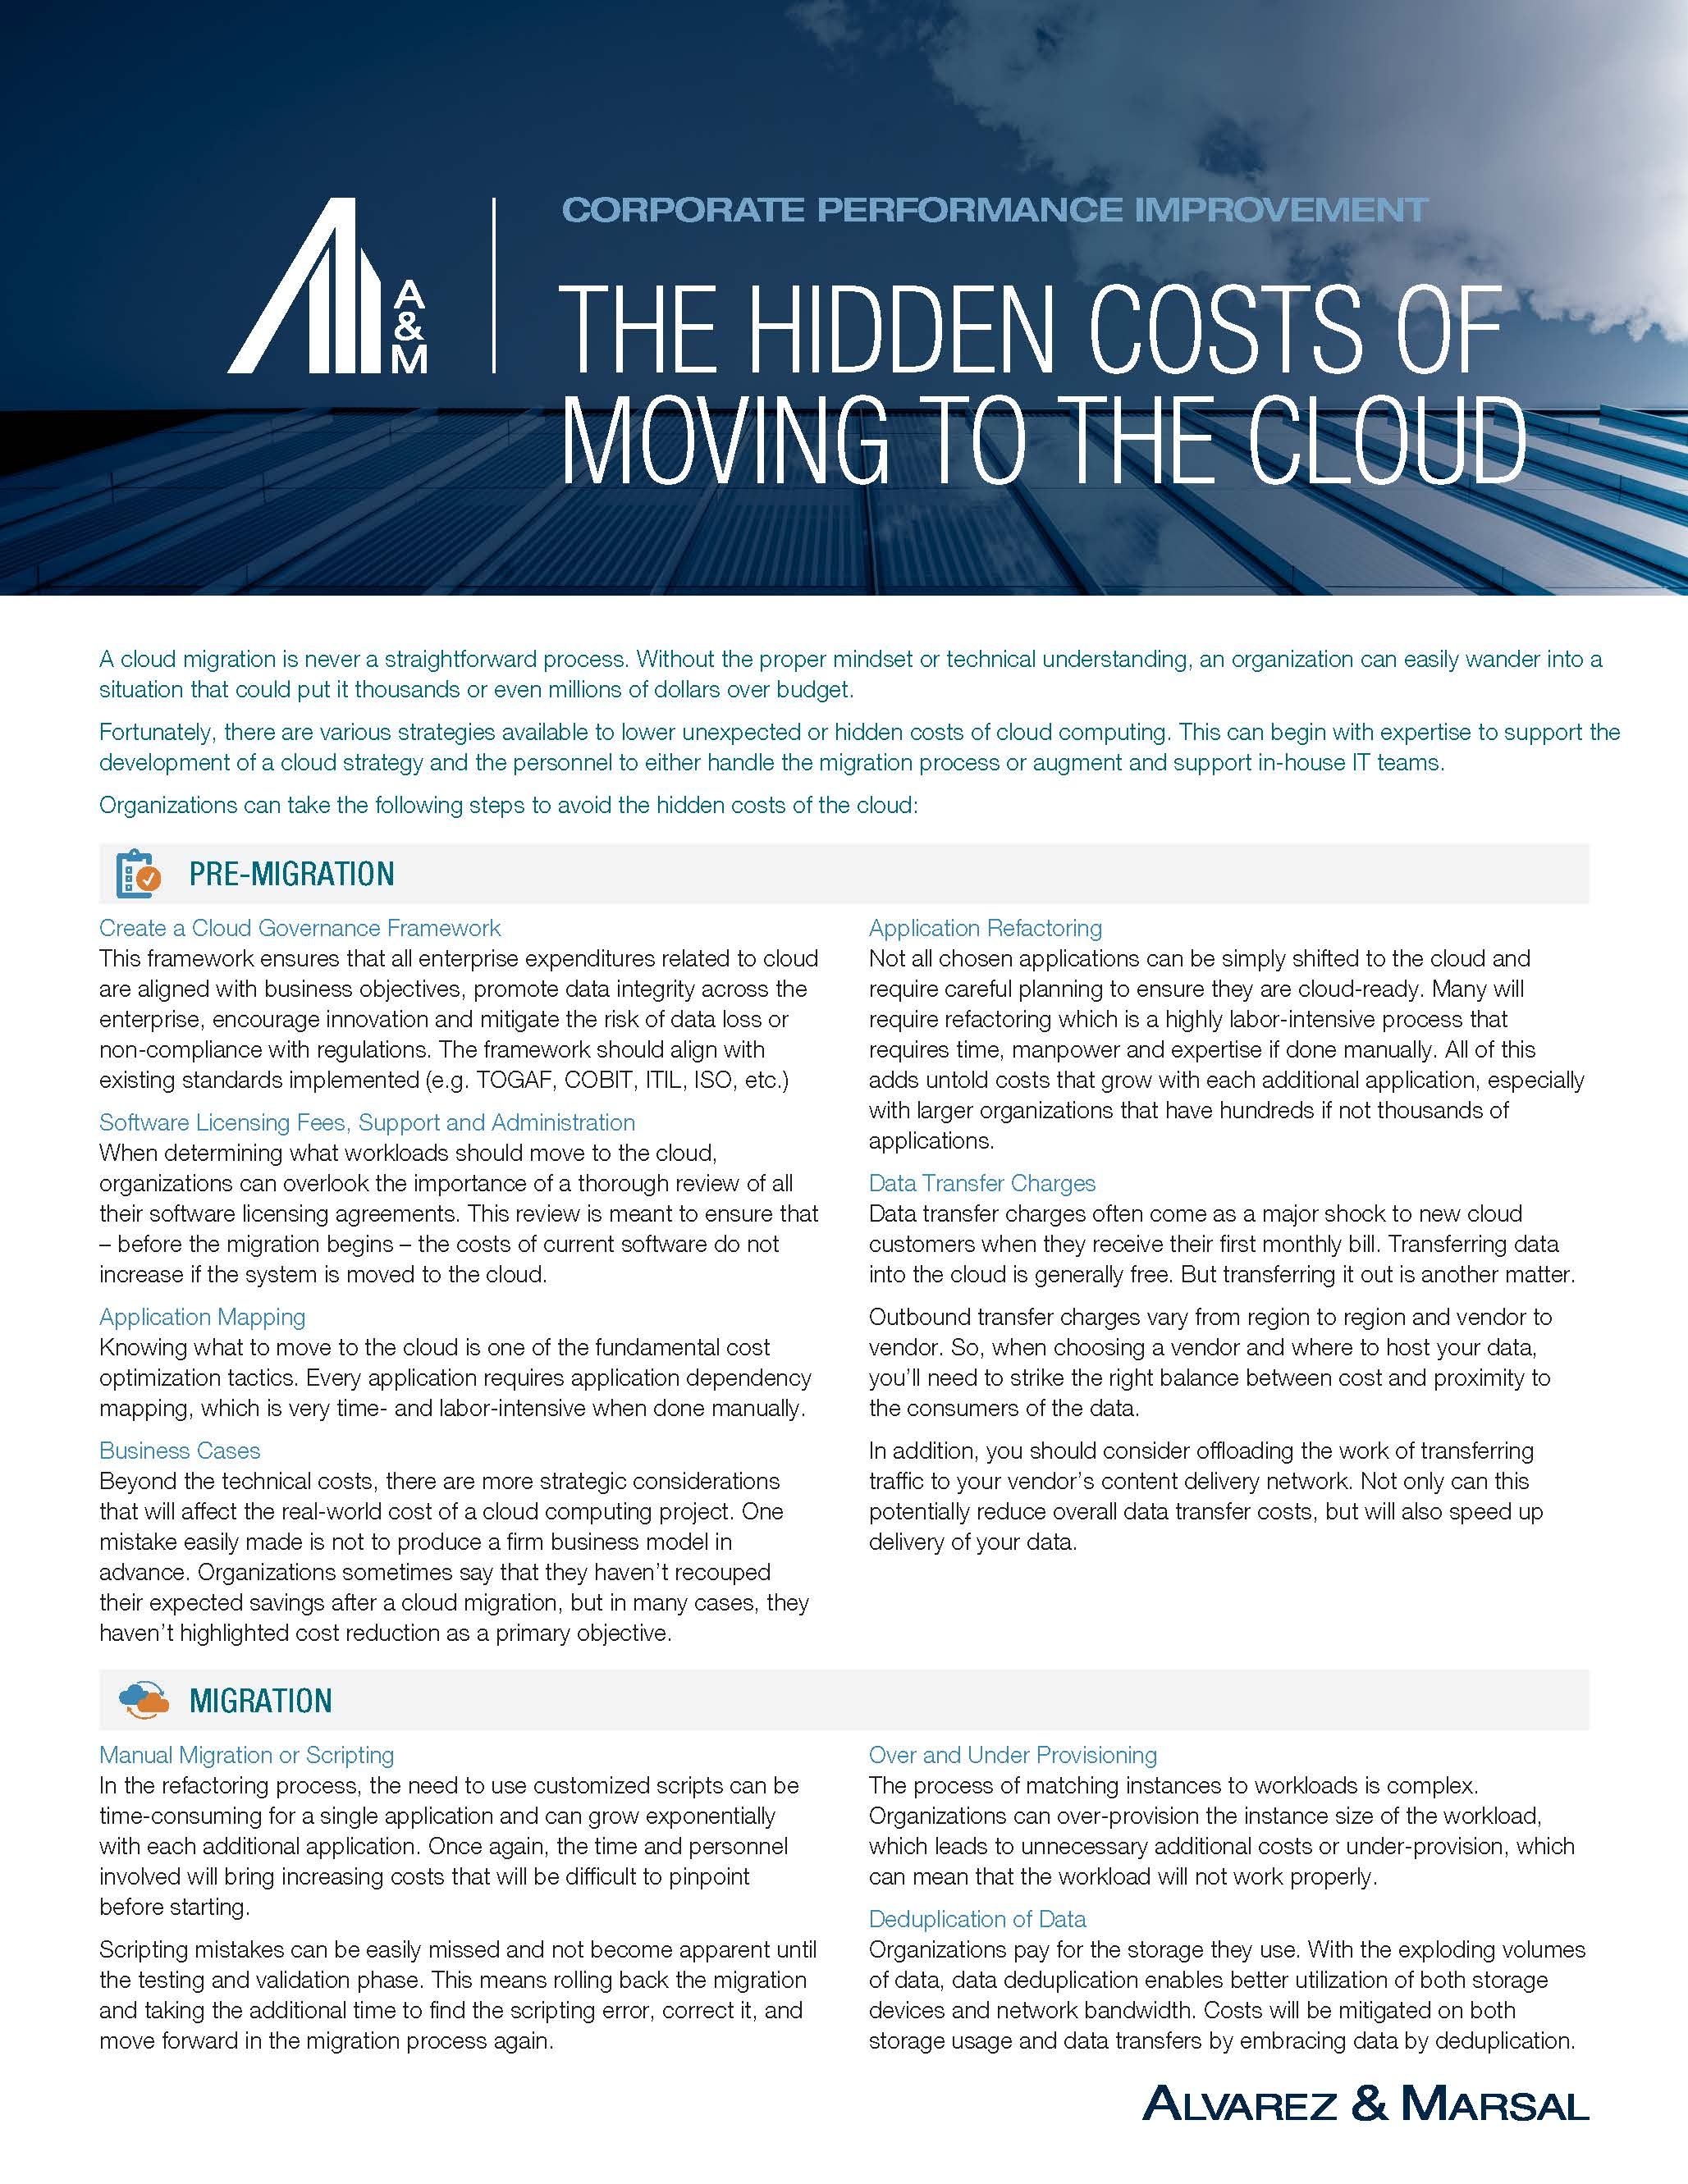 The Hidden Costs of Moving to the Cloud | Corporate Performance Improvement